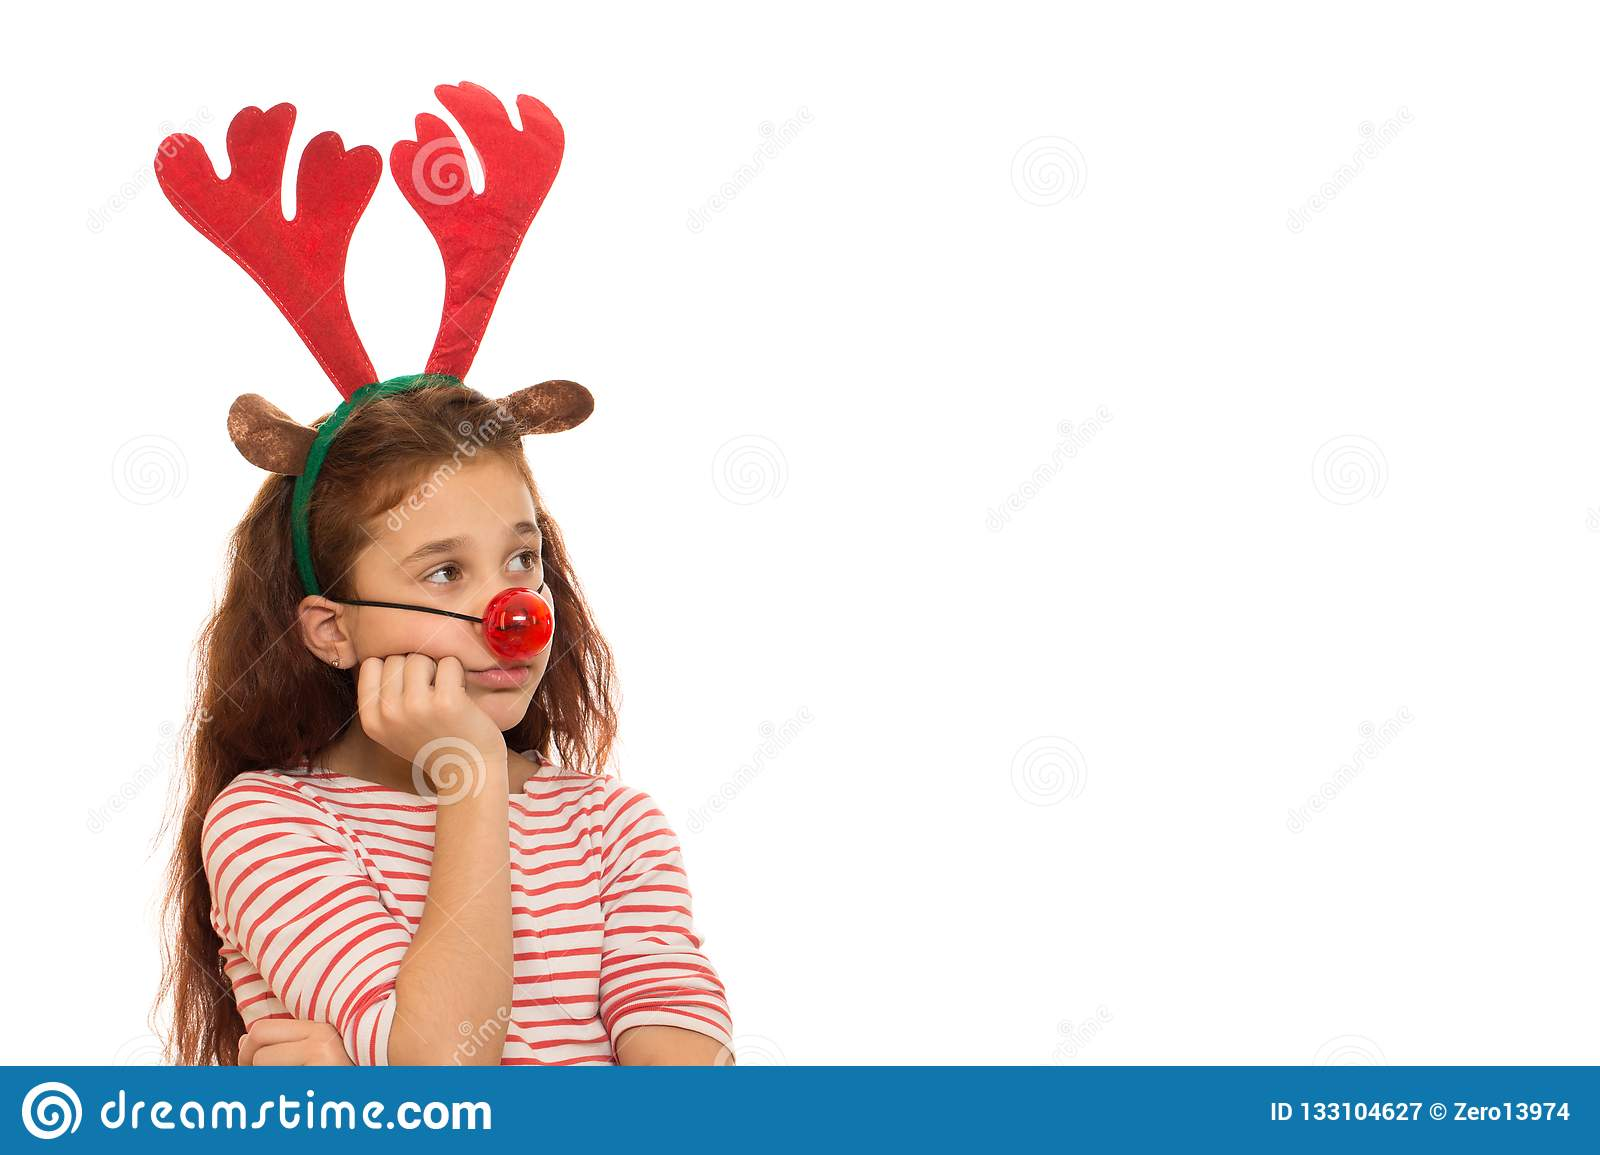 4bb36289e Cute Girl Wearing Christmas Antlers Stock Image - Image of festive ...